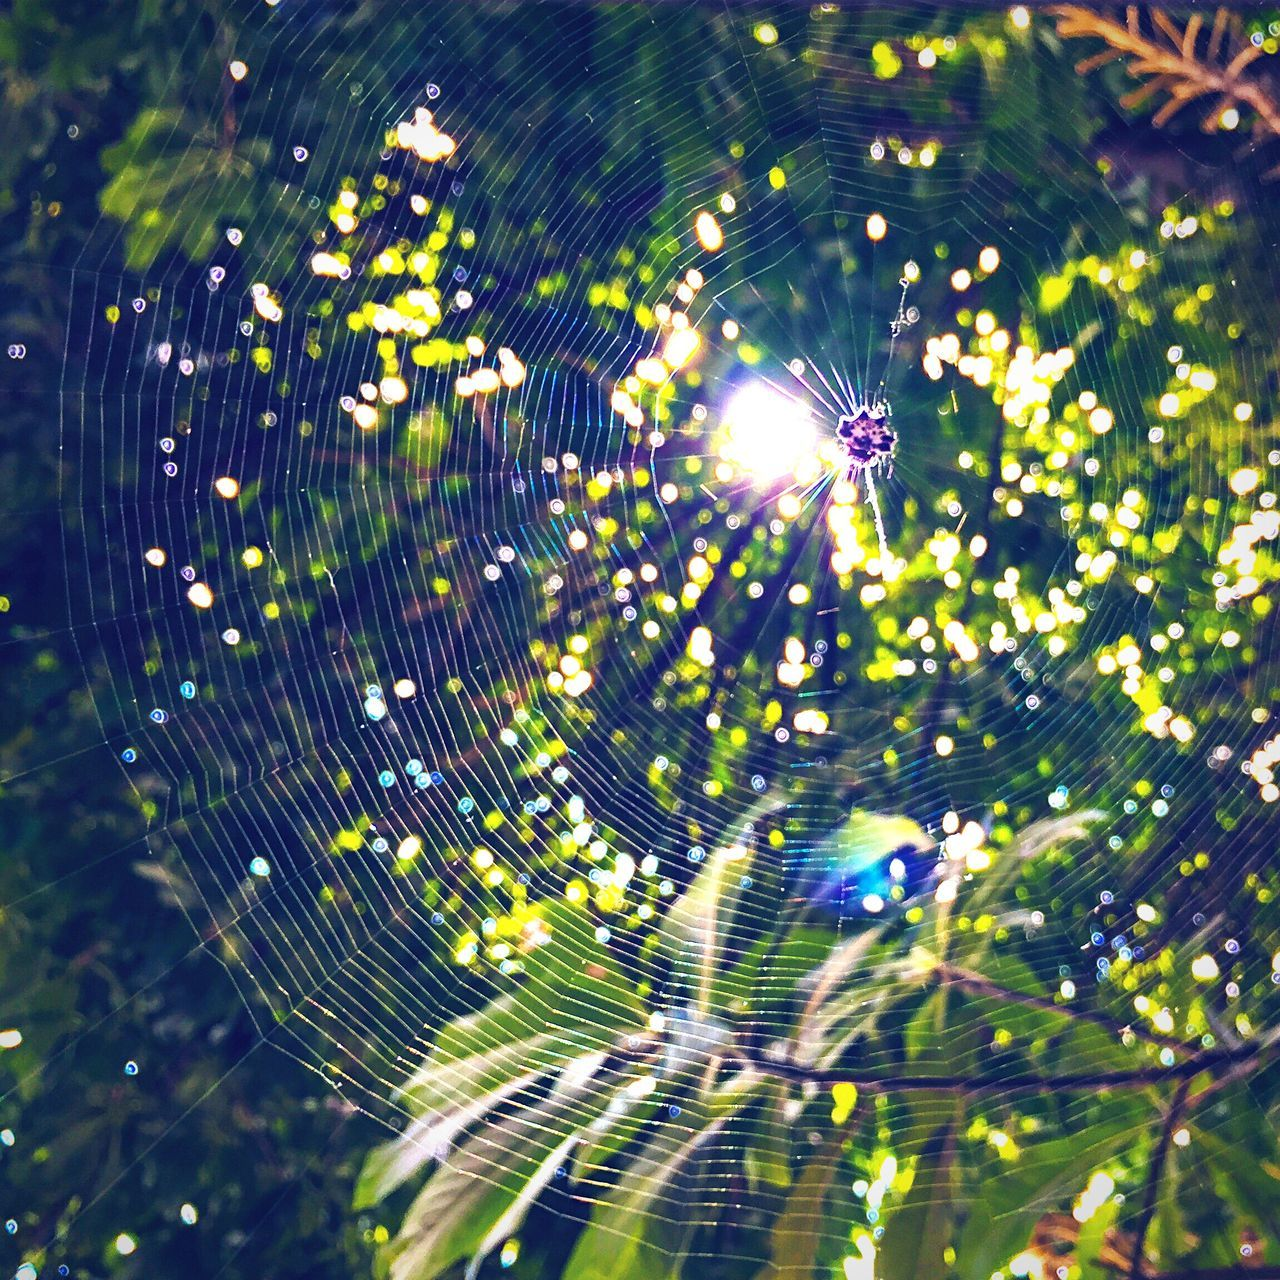 Spider net Spider Web Spider Fragility Complexity Nature Drop Concentric Beauty In Nature No People Outdoors Close-up One Animal Spinning Animal Themes Web Day Star Trail Water